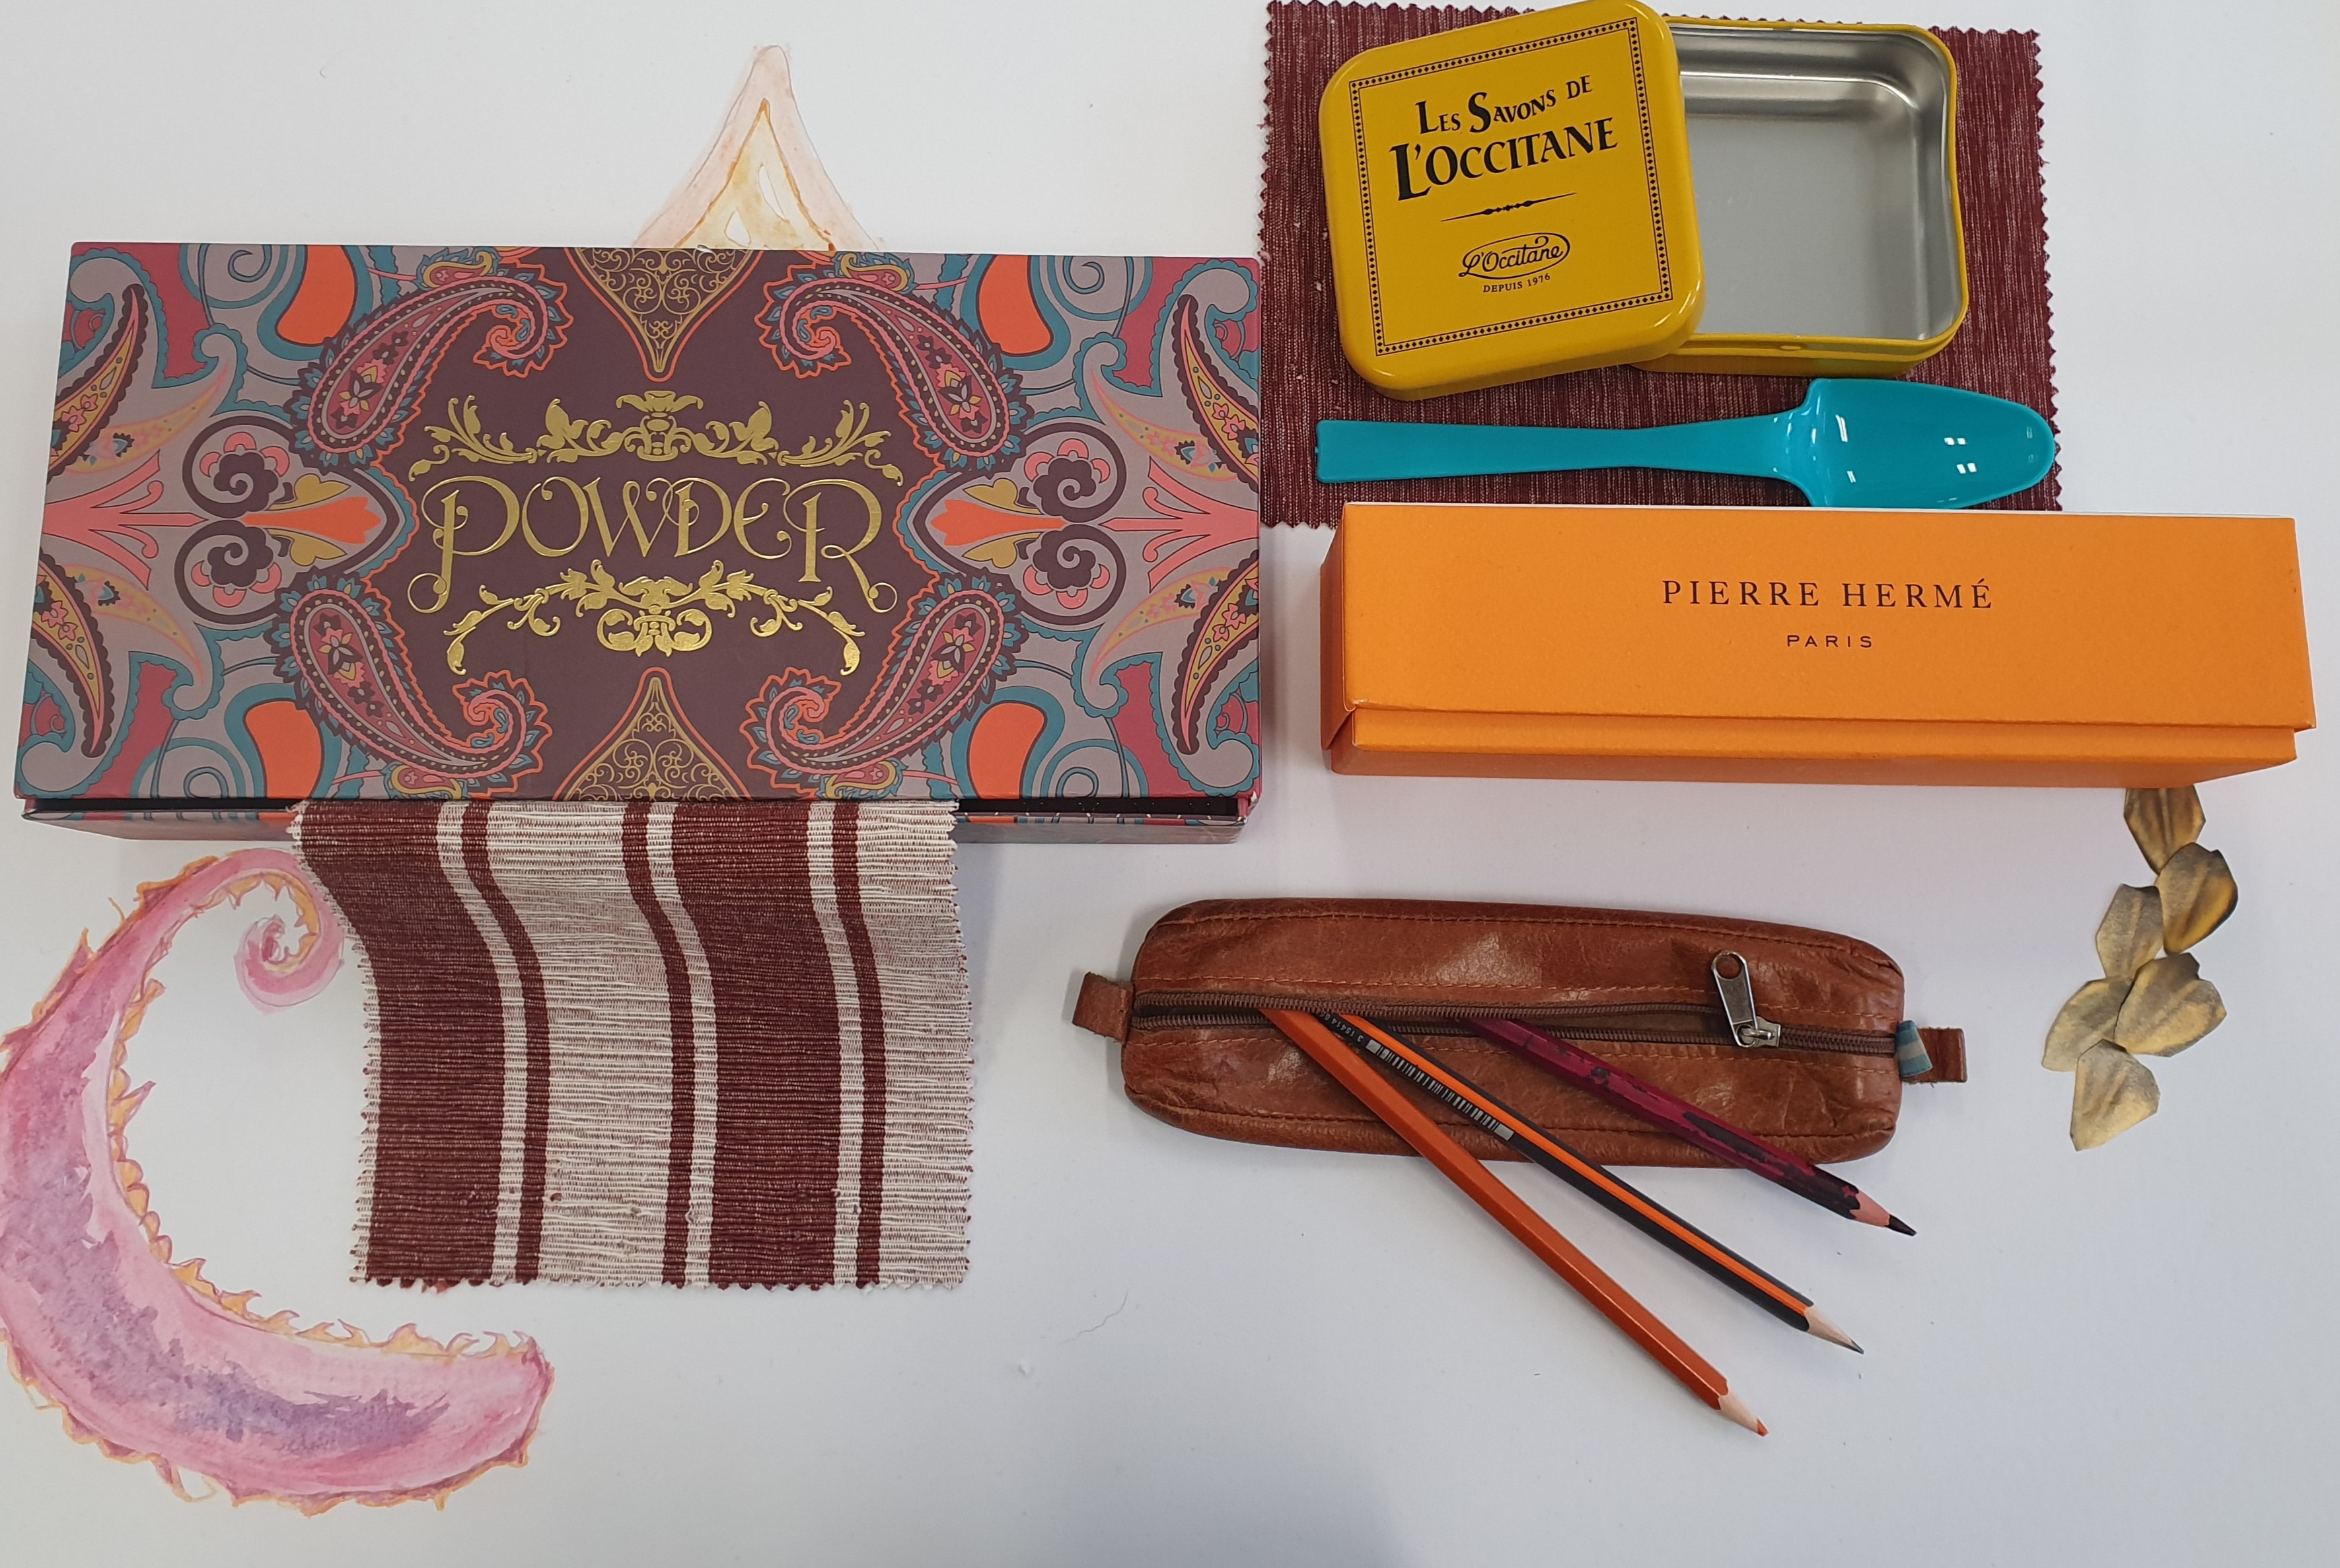 A mood board on a white background. A patterned case with the word 'Powder' is on the left of the board. To the right there is a small yello L'occitane tin open and a plastic blue spoon beneath it. There is also an orange rectangular box from Pierre Hereme and a brown leather pencil case with three pencils poking out of the pencil case diagonally.